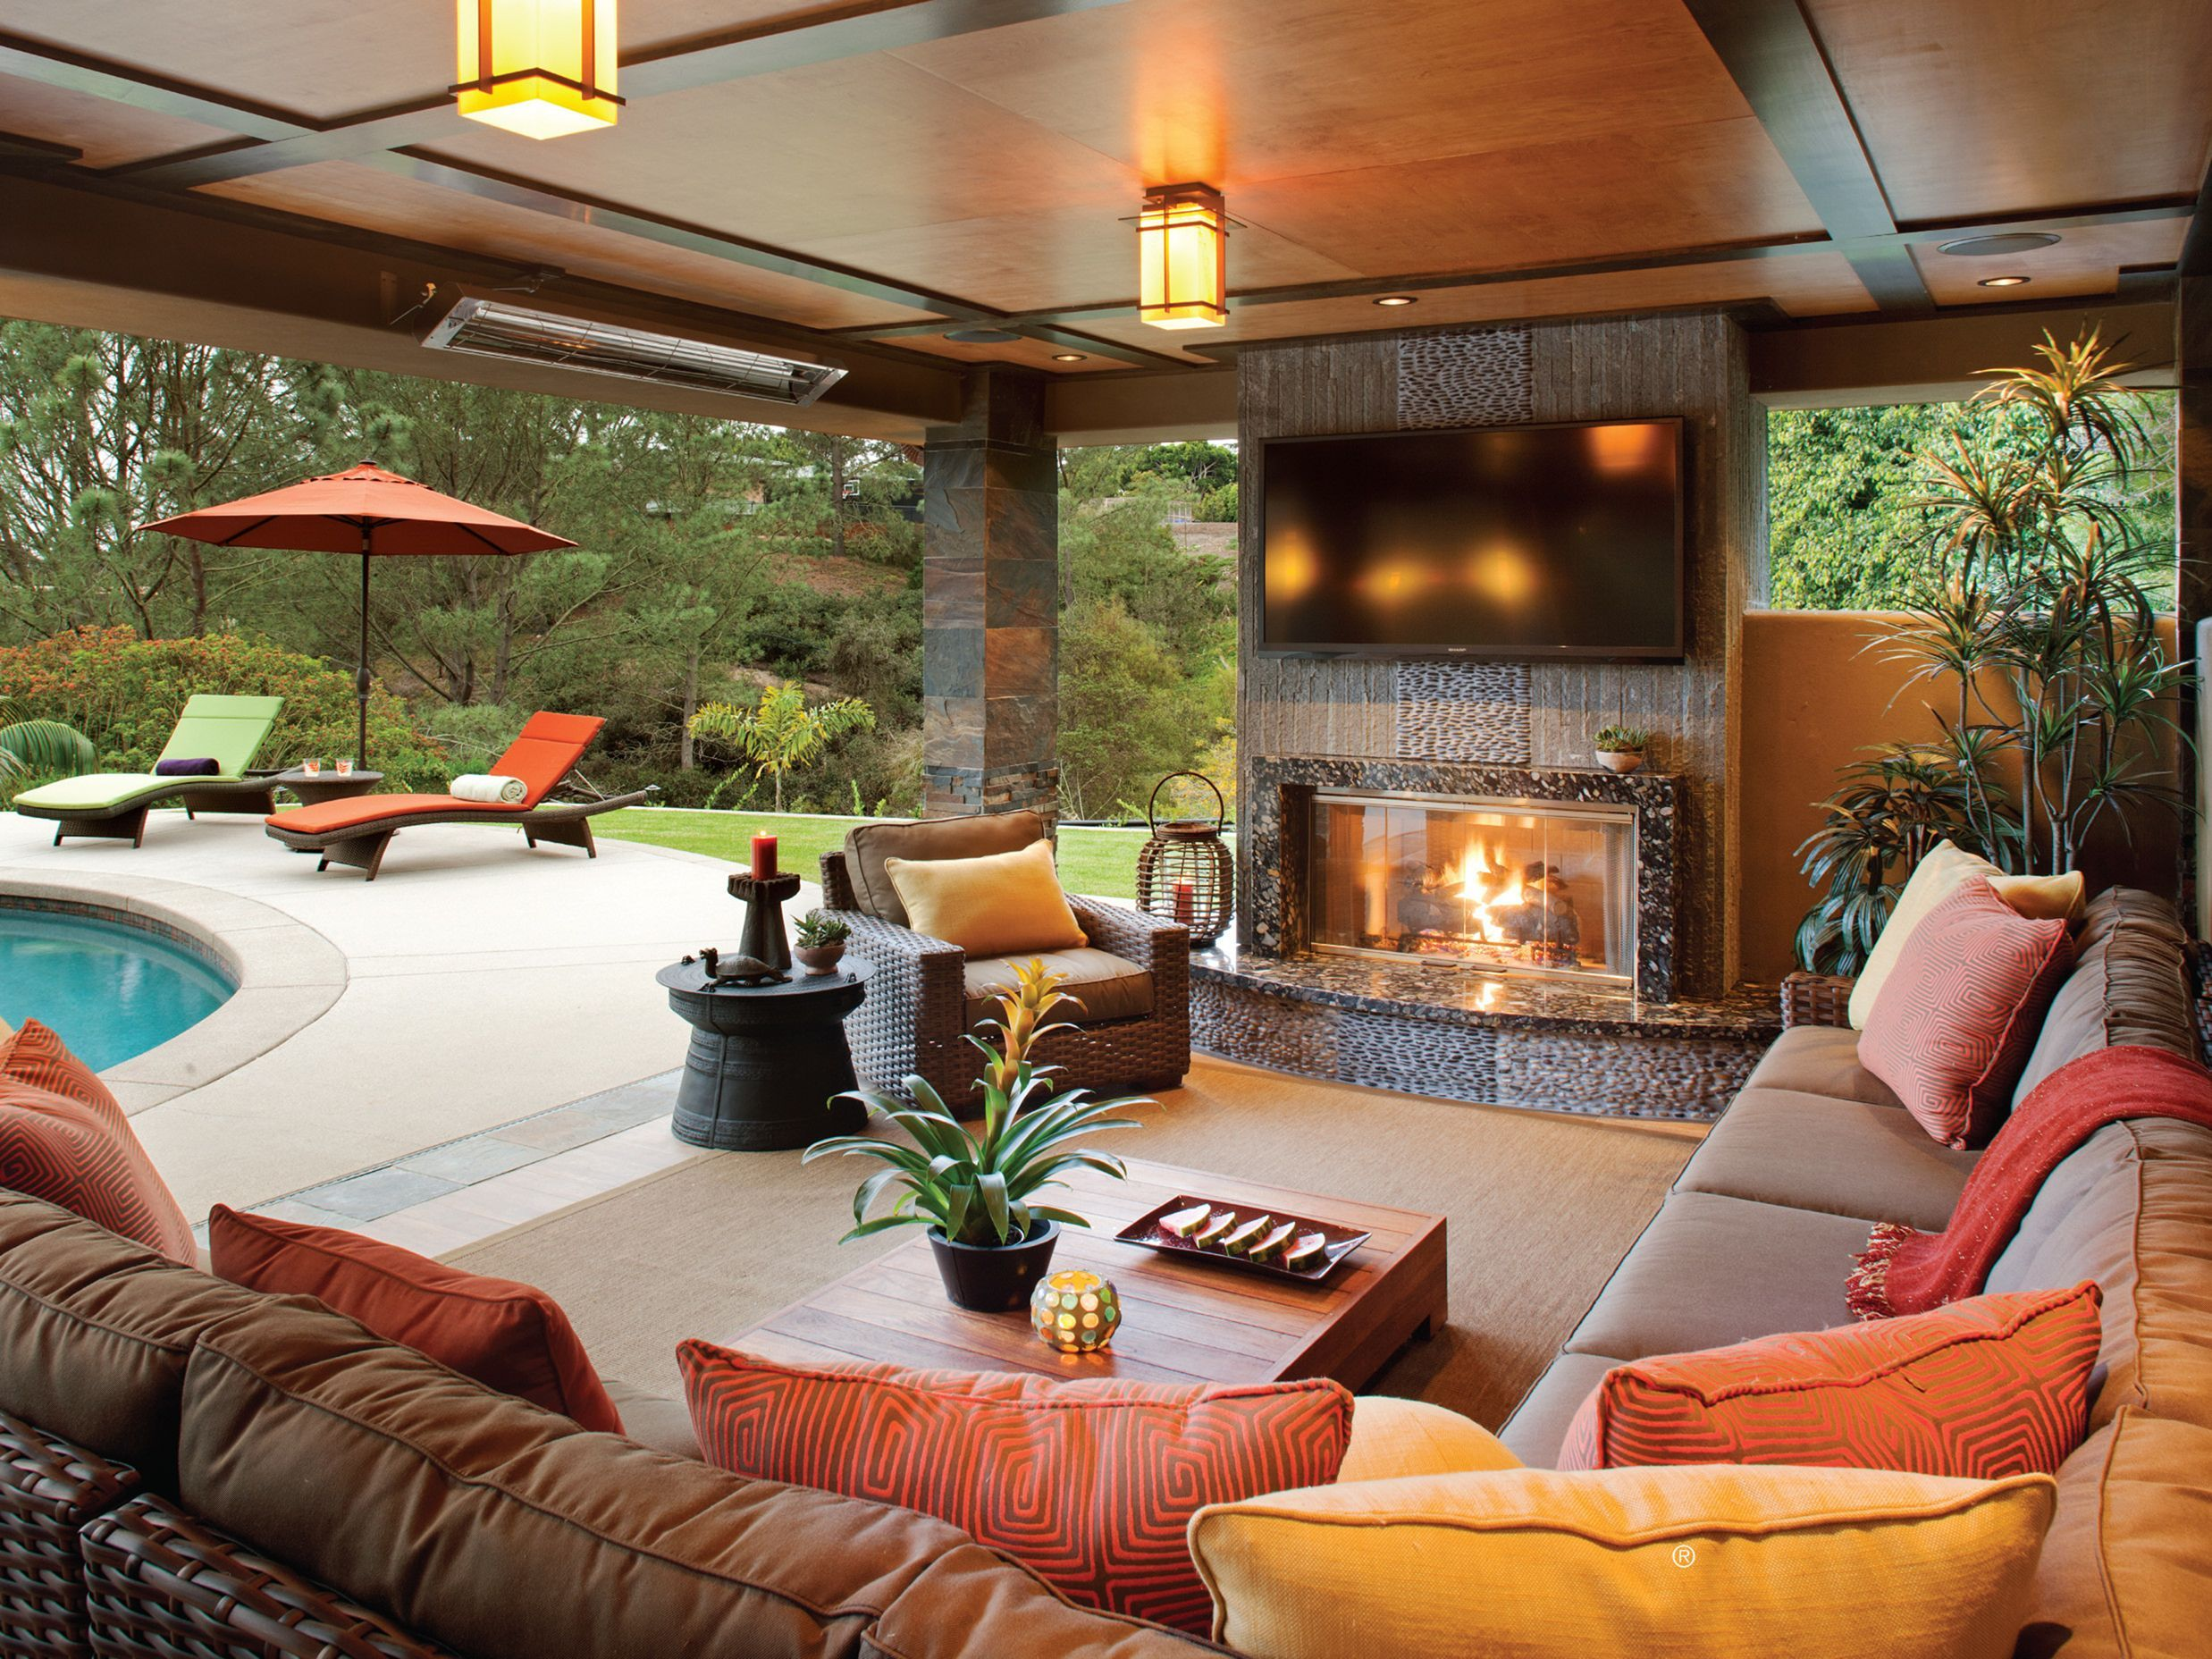 10 Fantastic Out Door Living Room Designs And Decoration ... on My Backyard Living id=56011